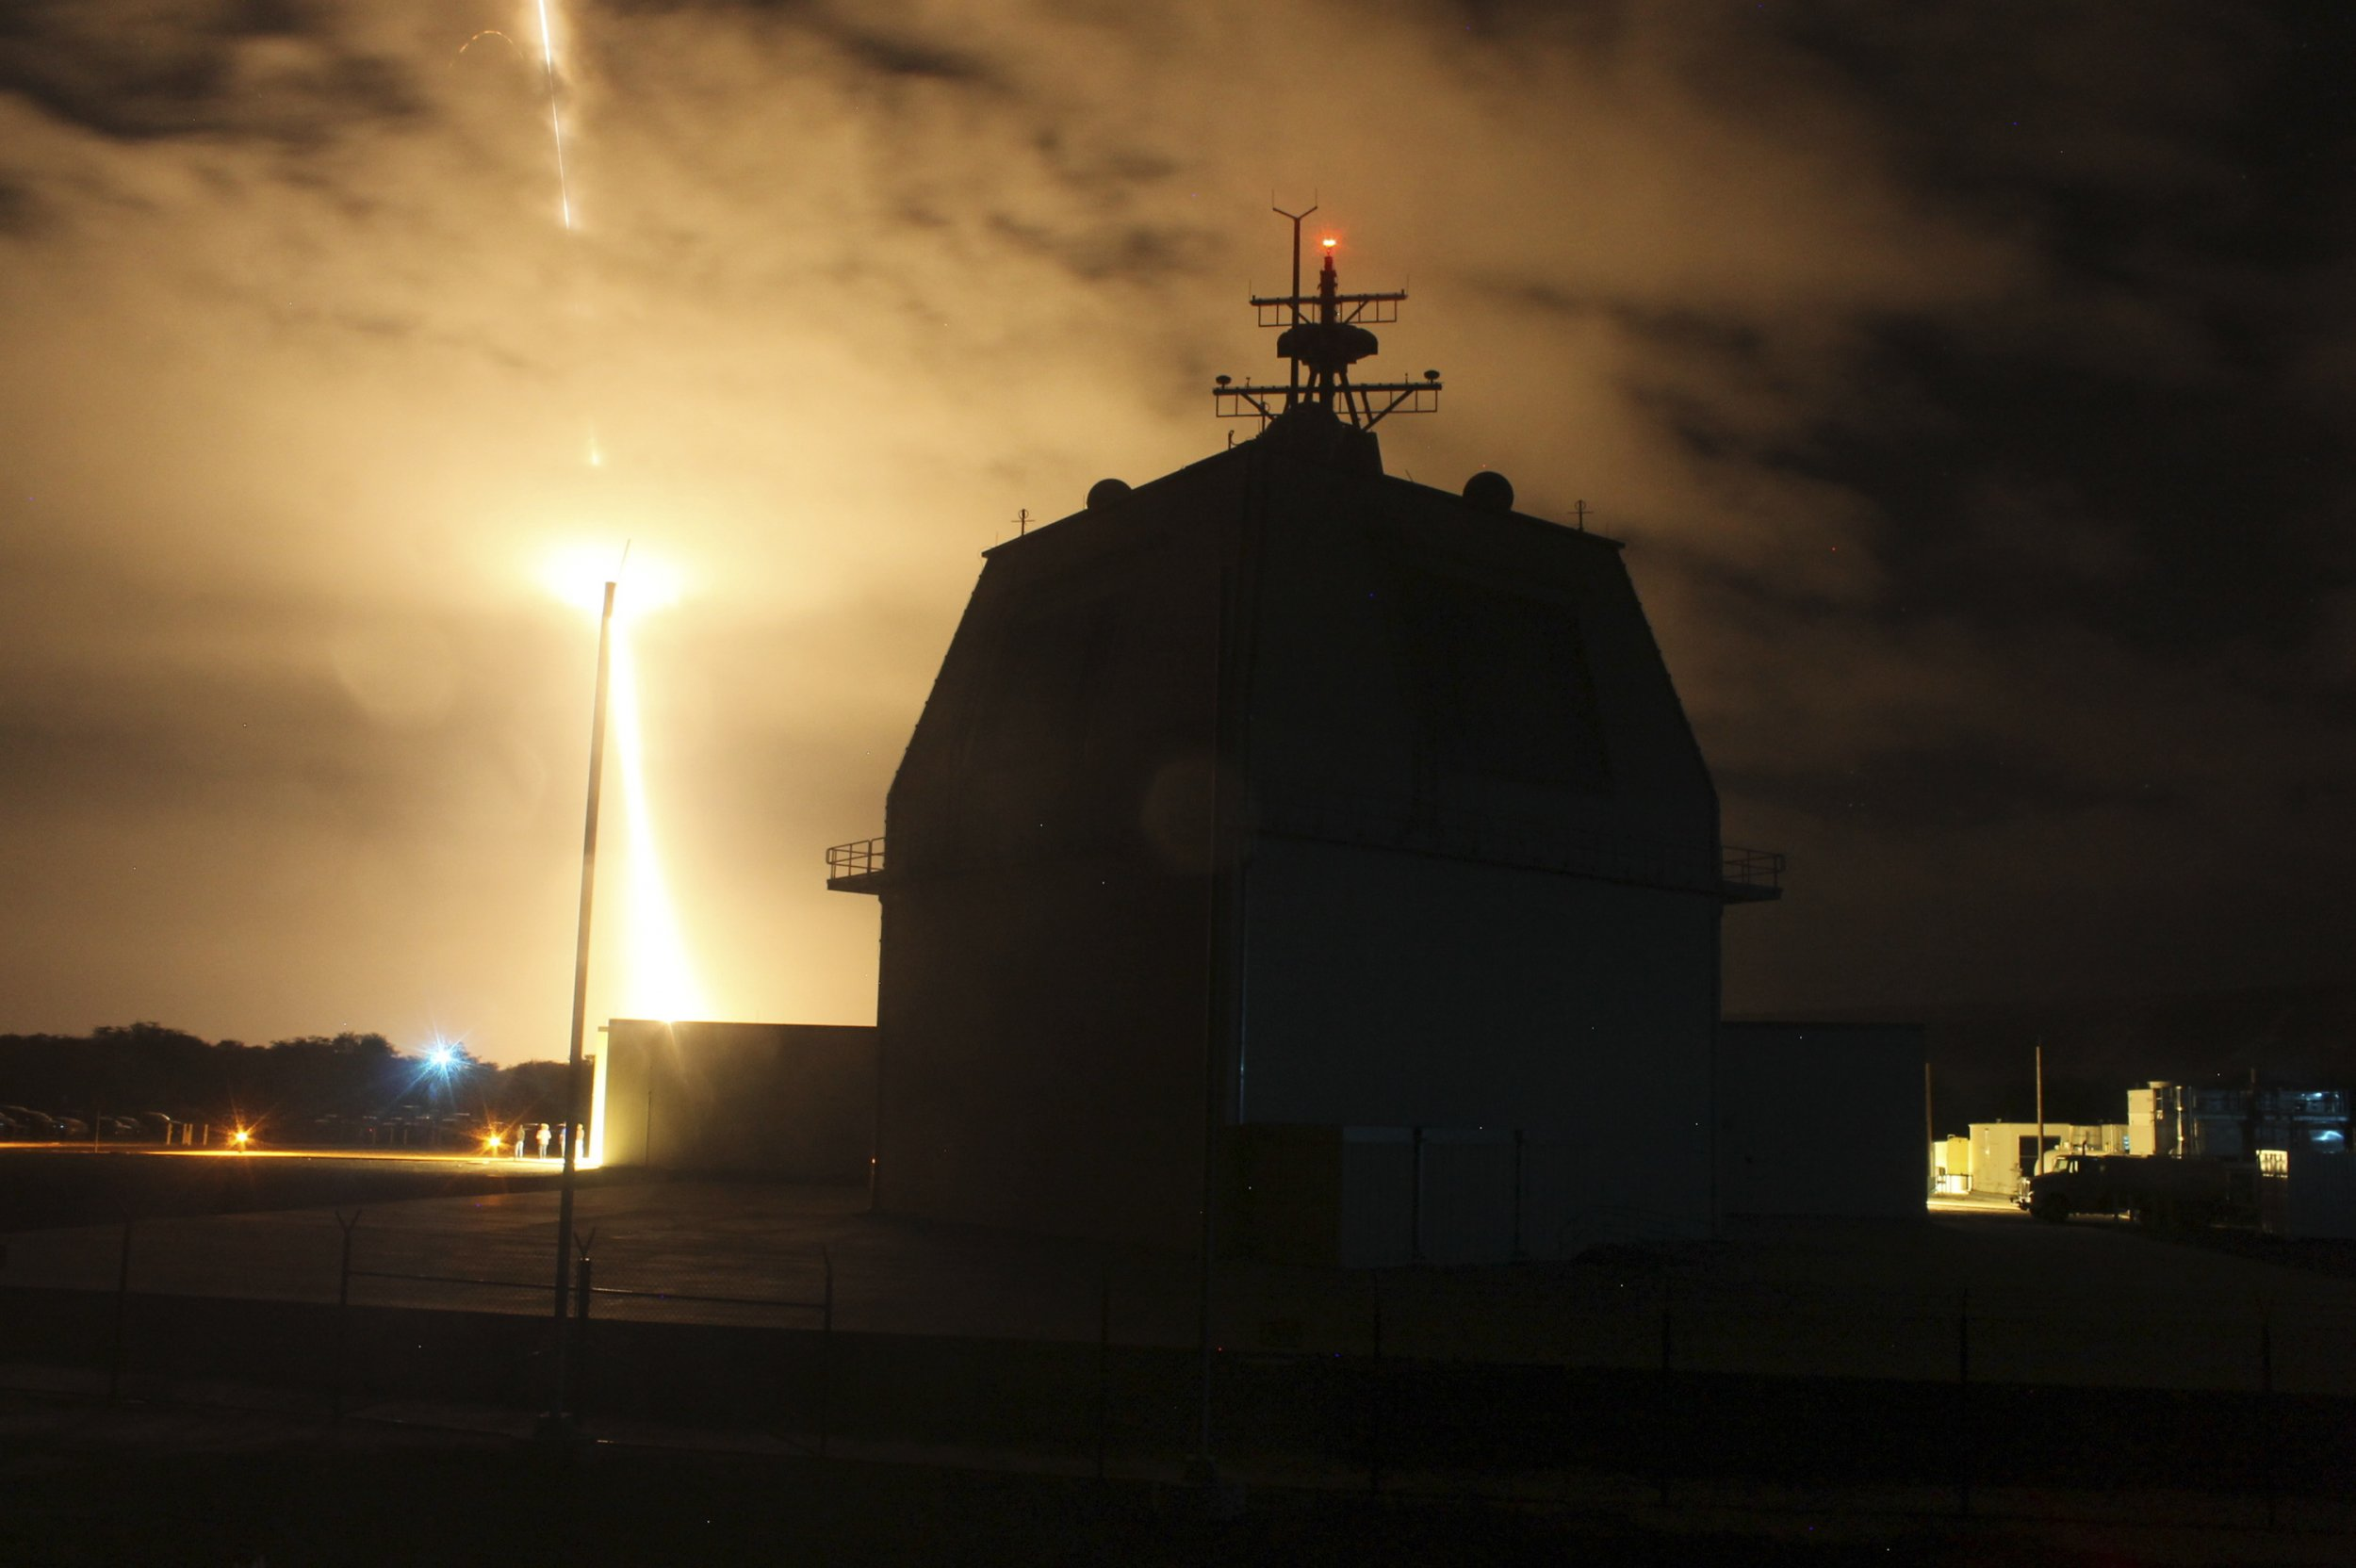 Russian Officials Say U.S. Global Missile Defense Could Lead to Nuclear War in Europe